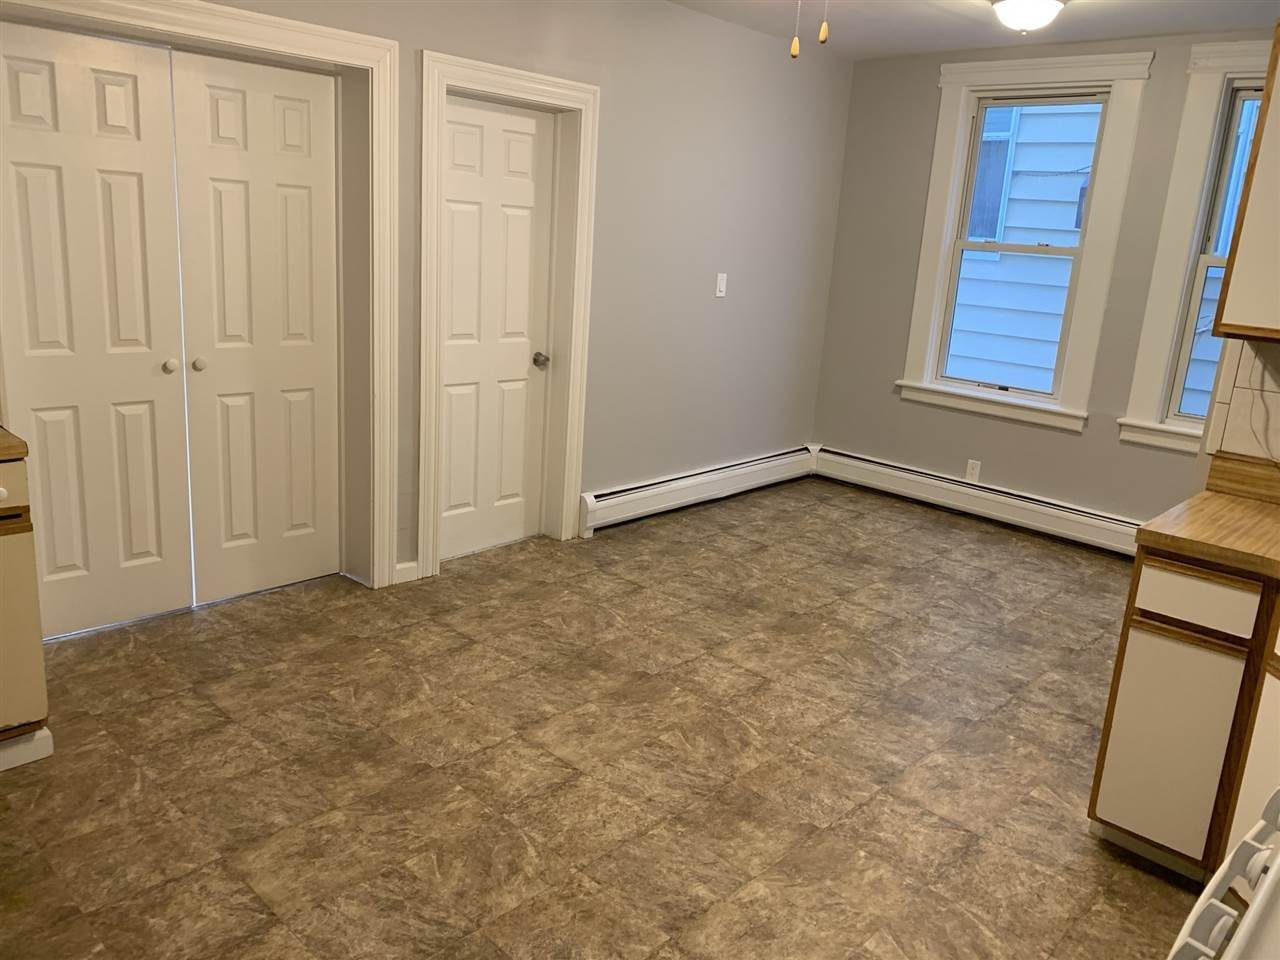 3. Residential for Rent at 595-597 Kennedy Boulevard #1 Bayonne, New Jersey 07002 United States